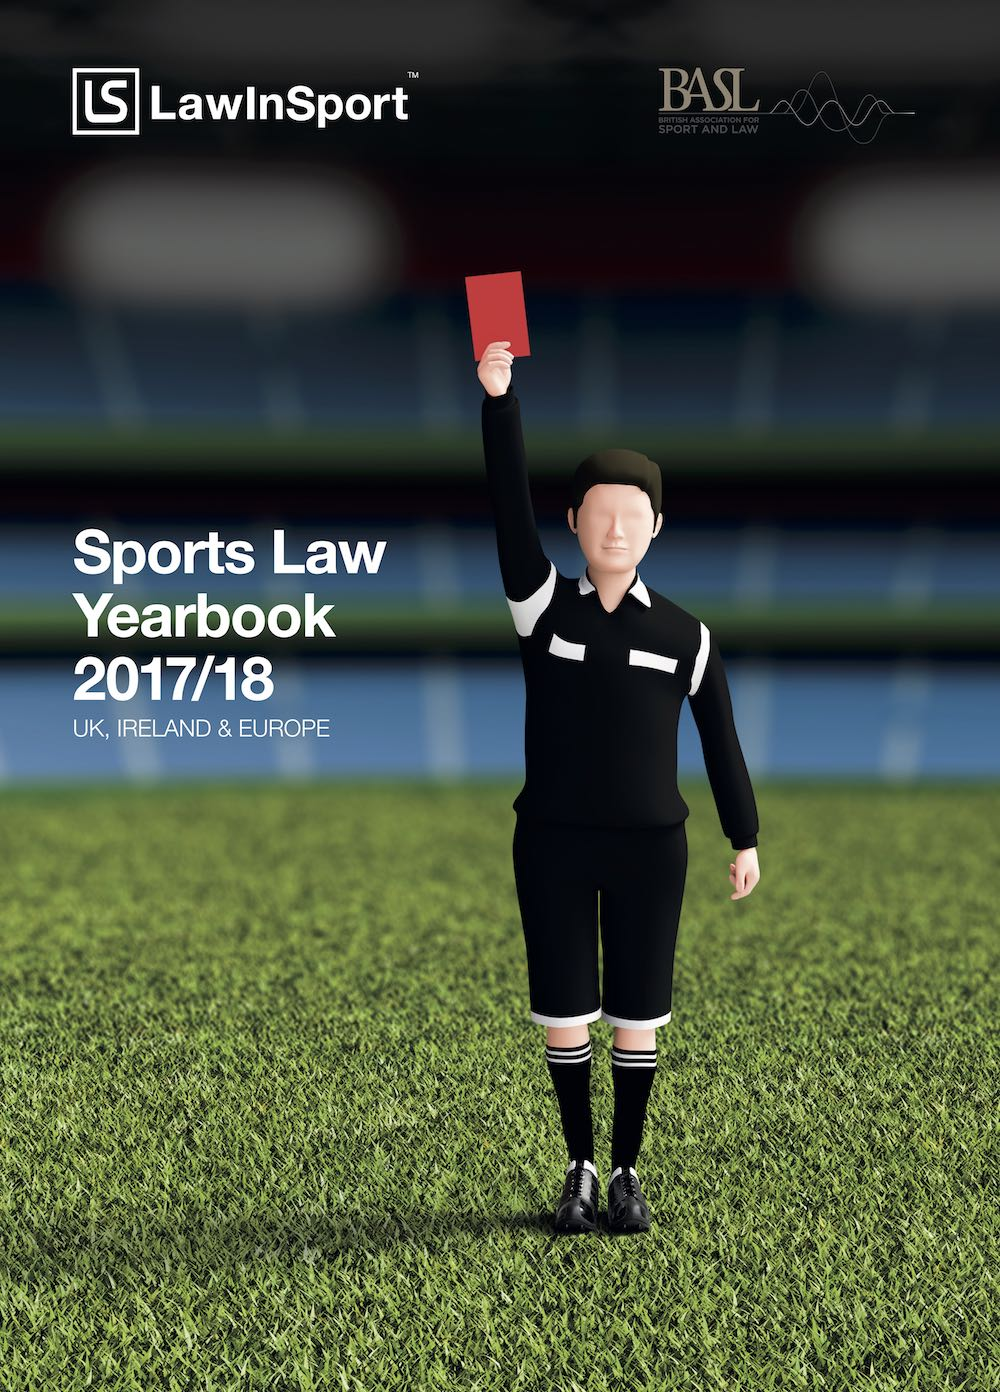 Sports Law Yearbook 2017/18 Hard Copy